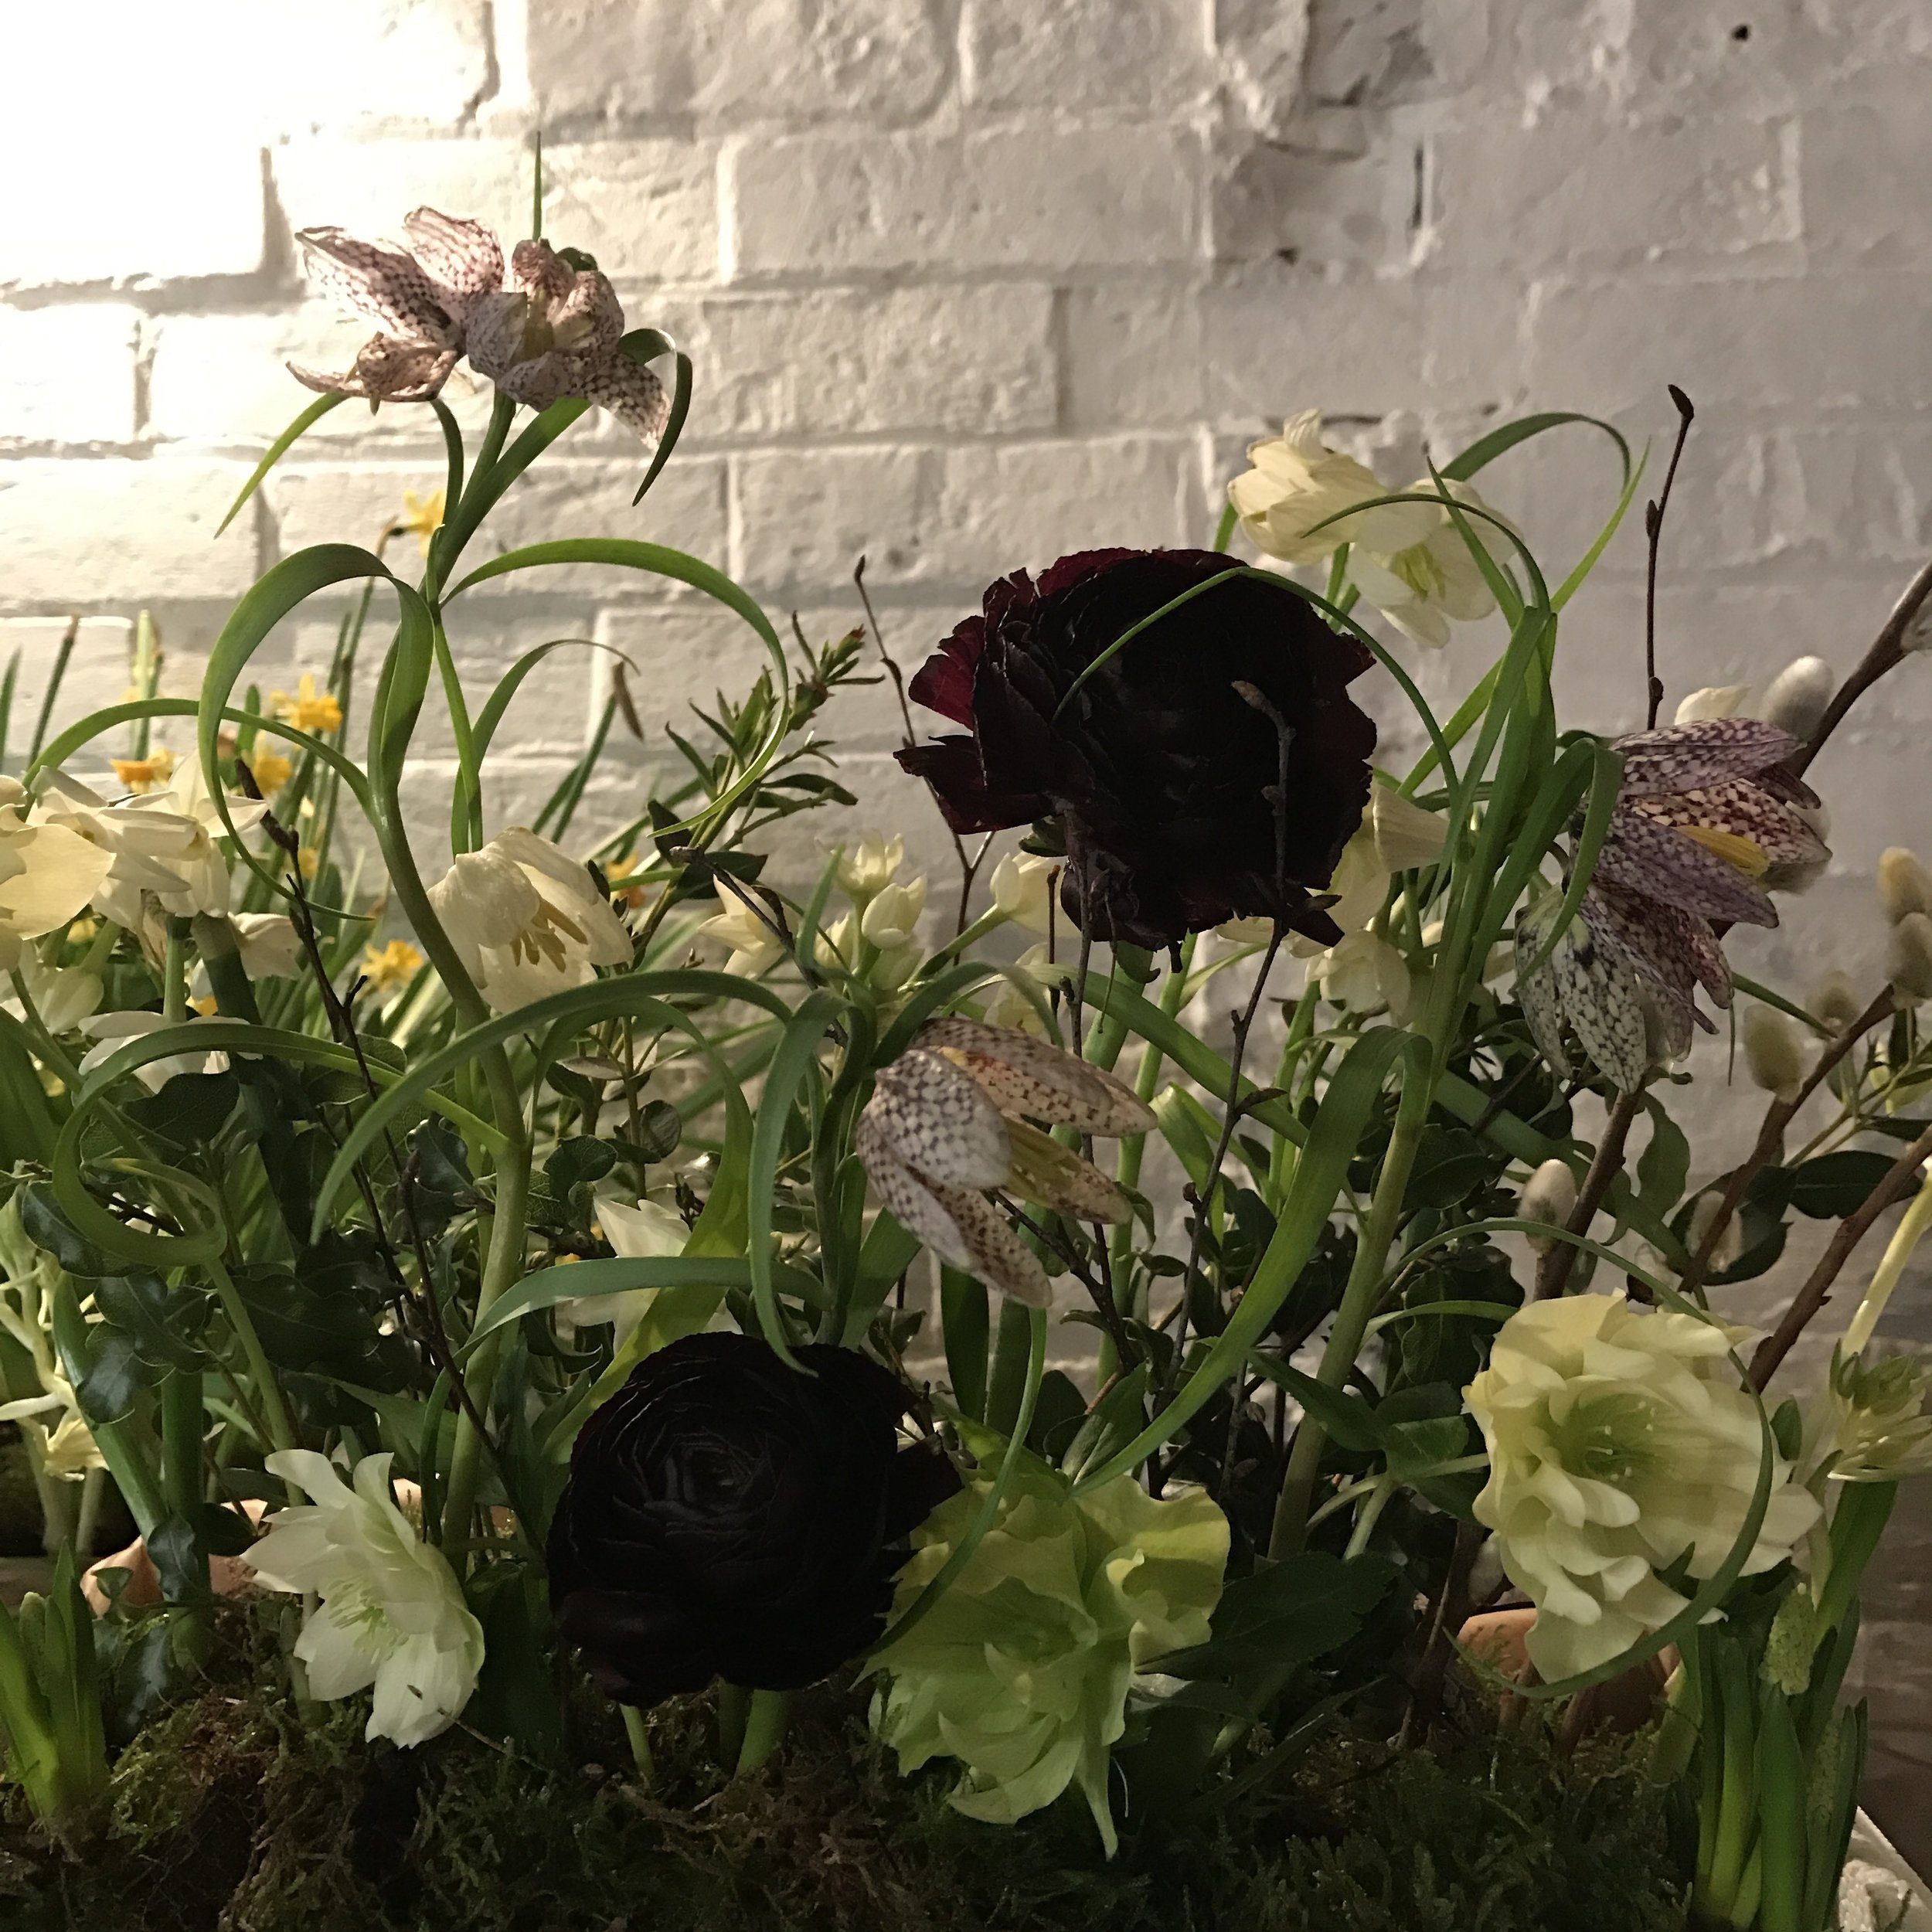 Frittilaries, ranunculus, hellebores, paperwhite narcissi